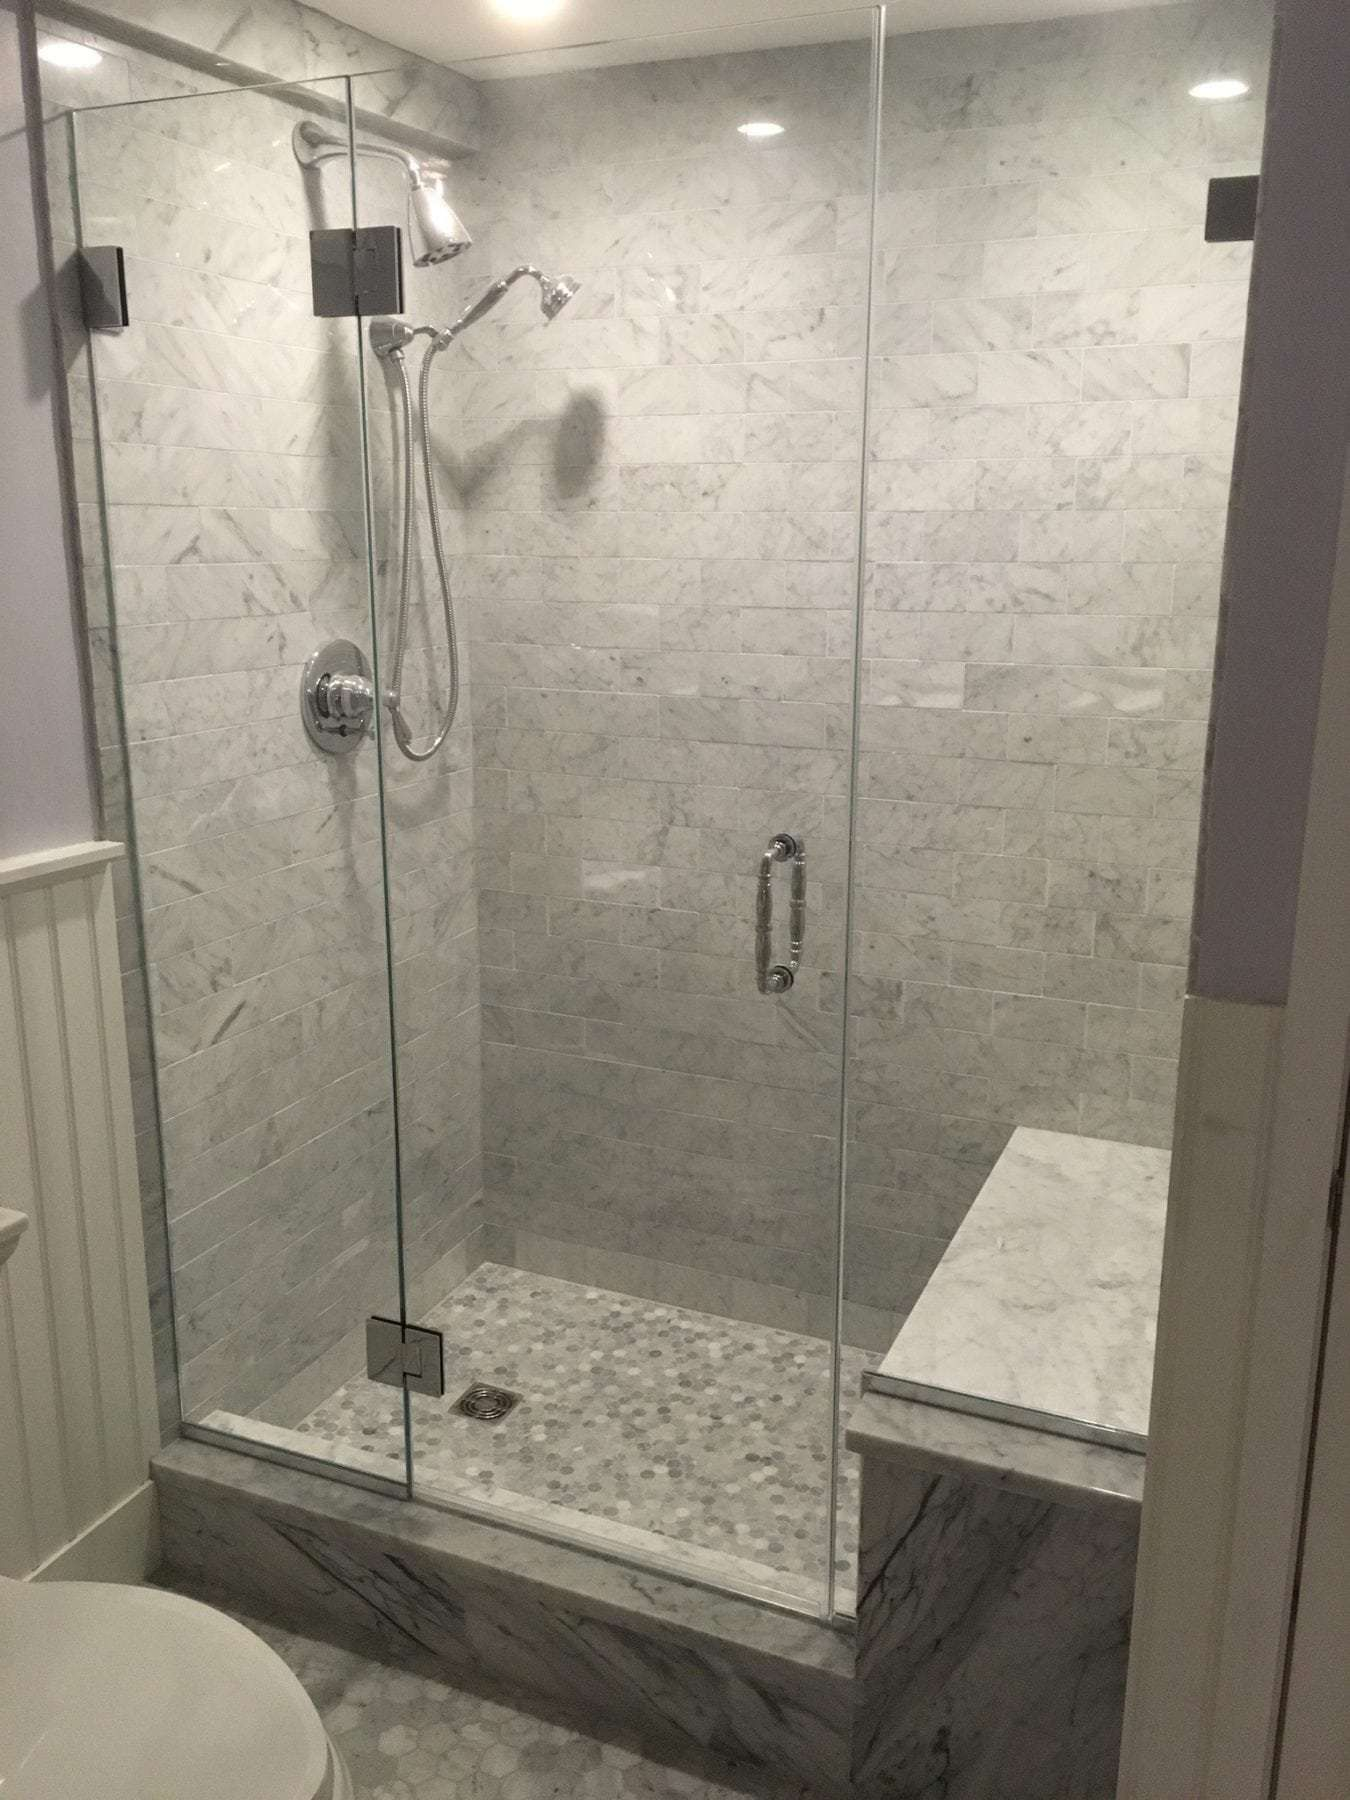 Frameless Shower Enclosure Sidelights Either Side And Door Centered Frameless Shower Enclosures Diy Shower Door Shower Enclosure